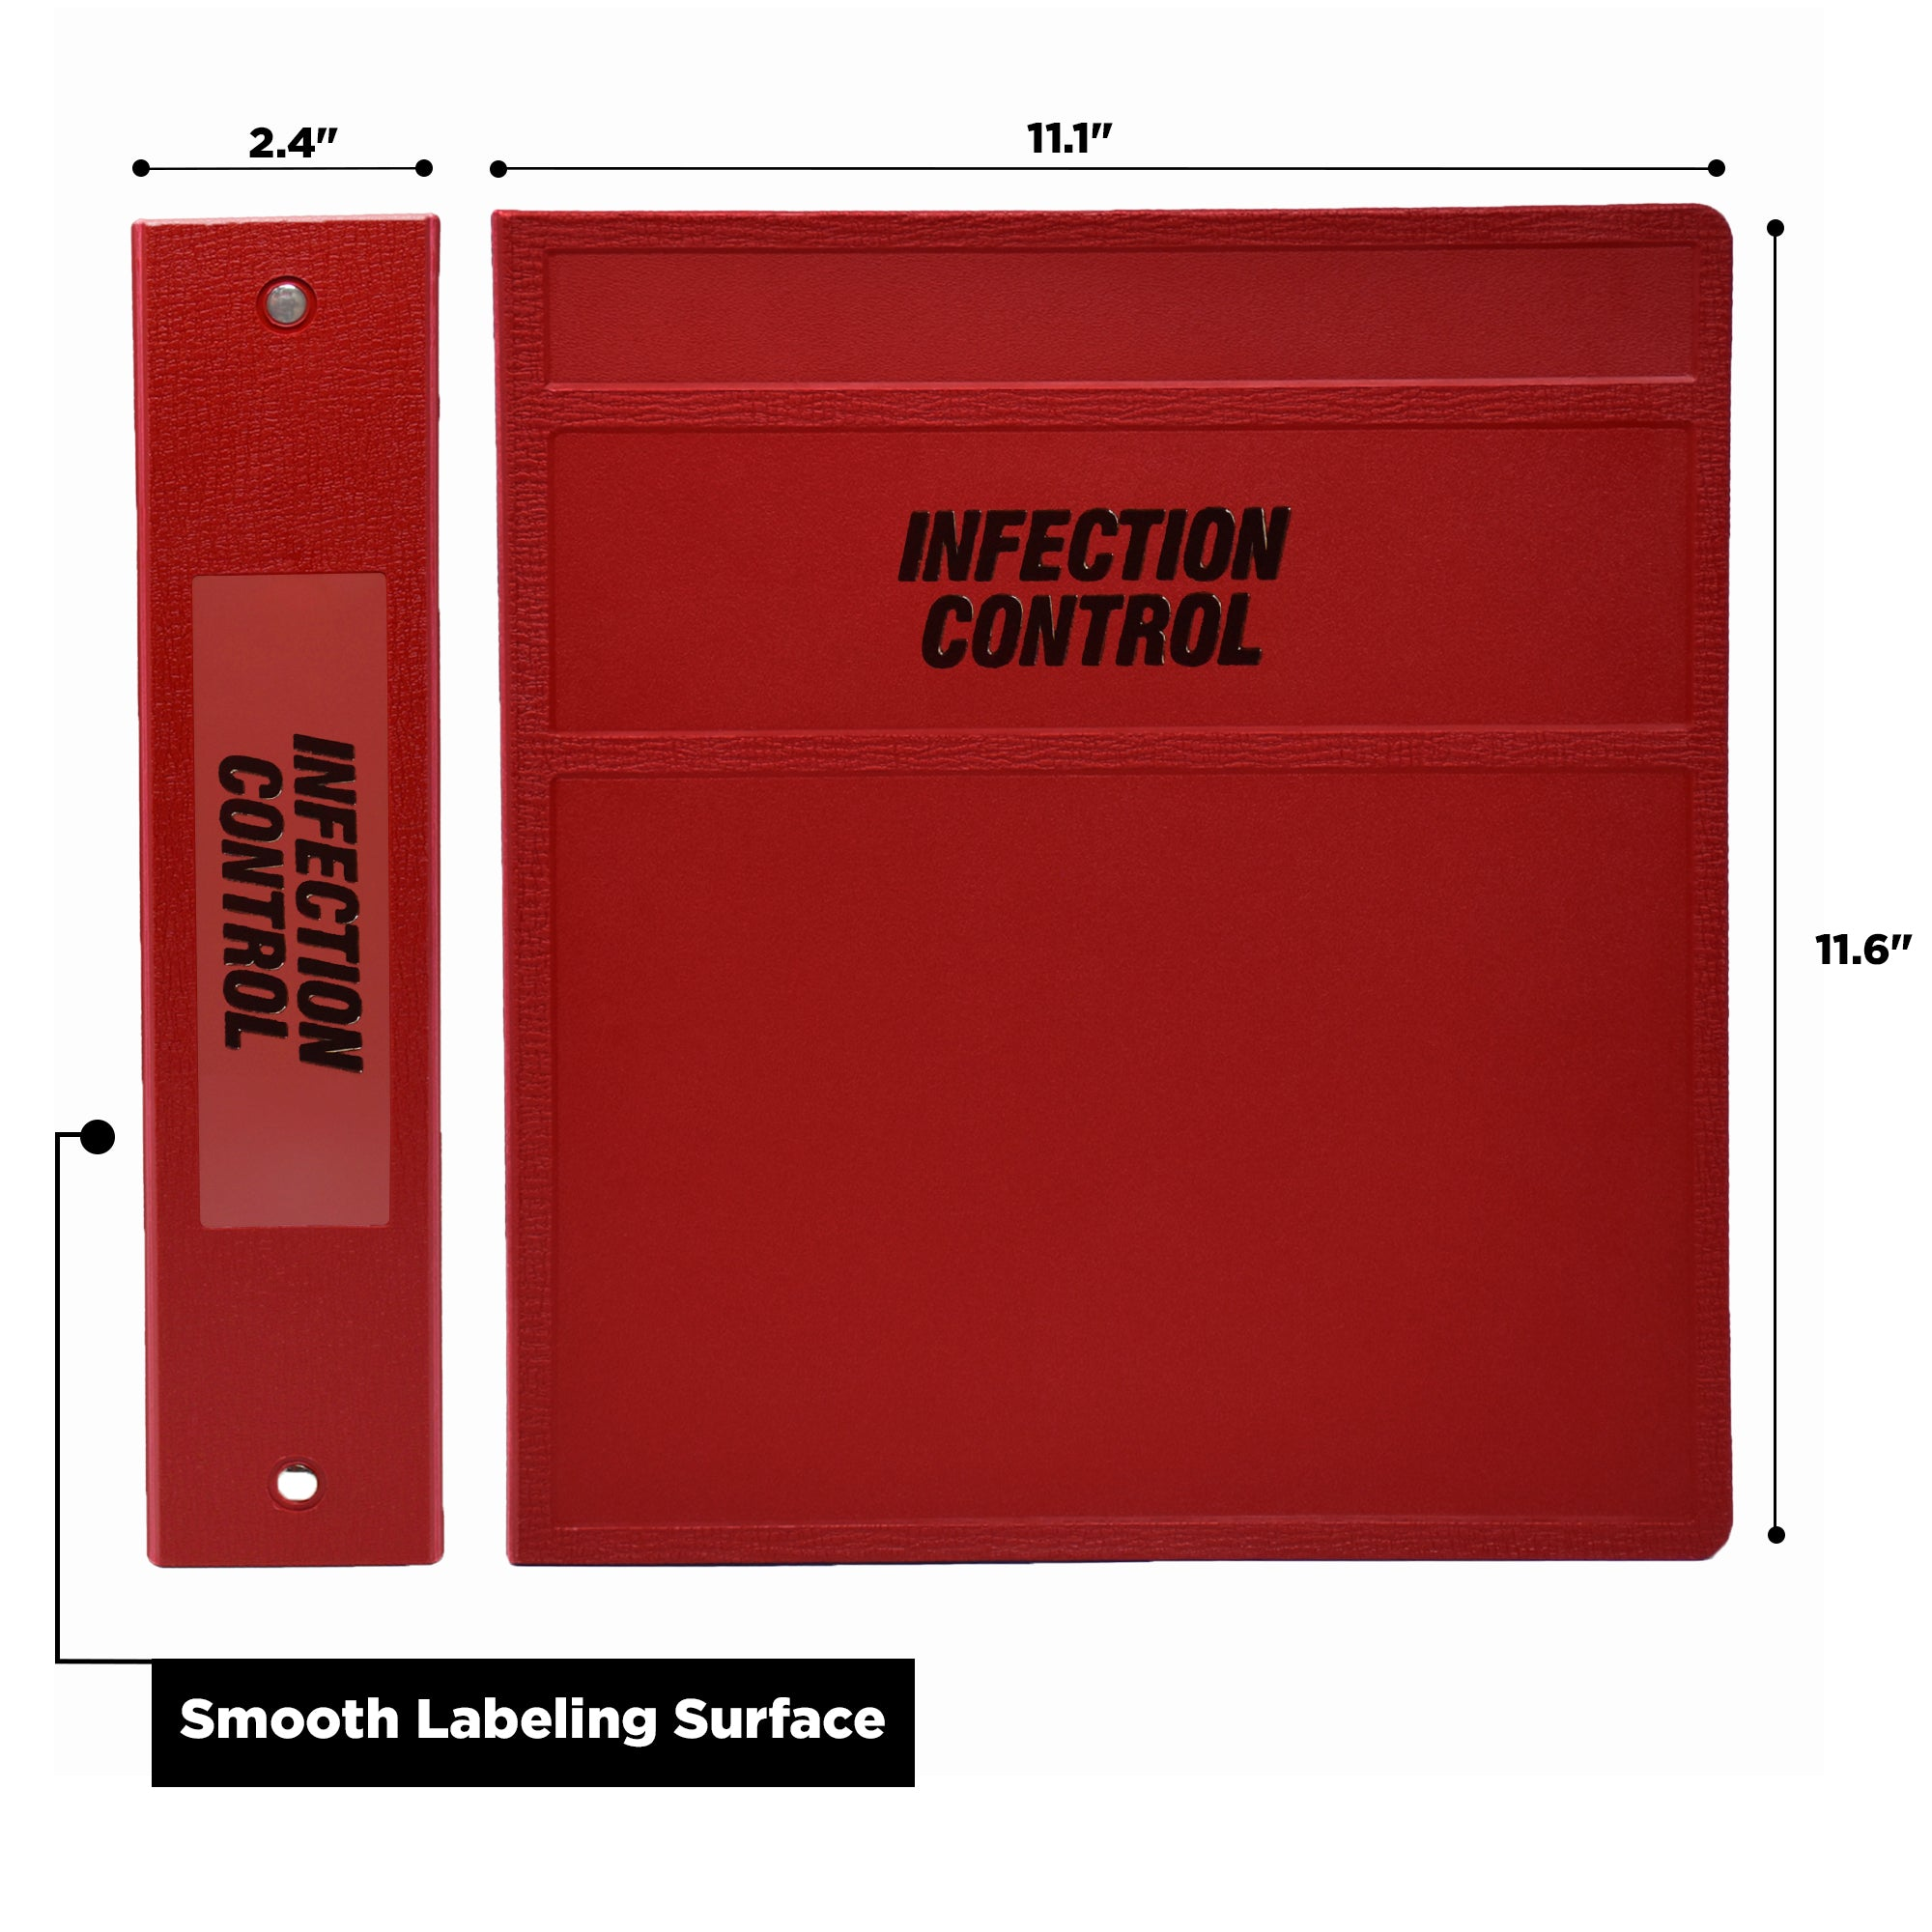 2-Inch Heavy Duty 3-Ring Binder for Infection Control Manual – Side Opening